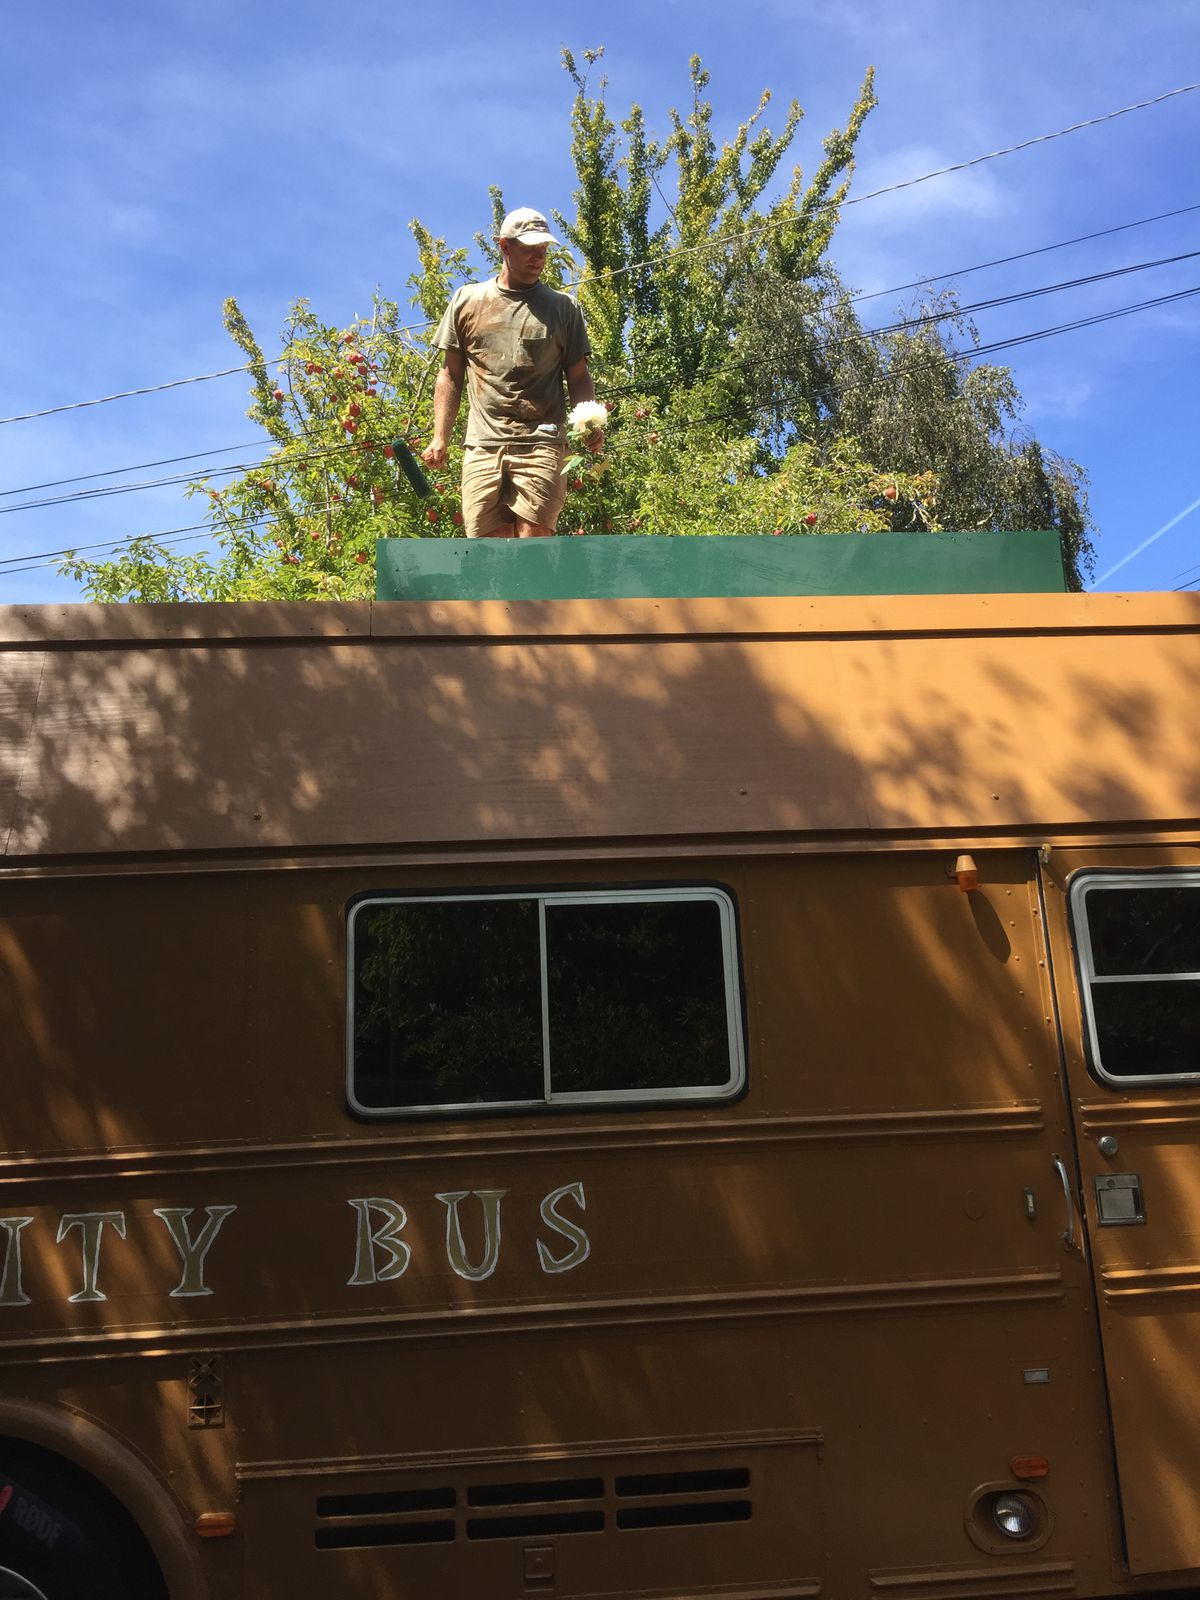 Man in dirty tshirt and shorts stands on top on RV, with green flower bed in front of him.